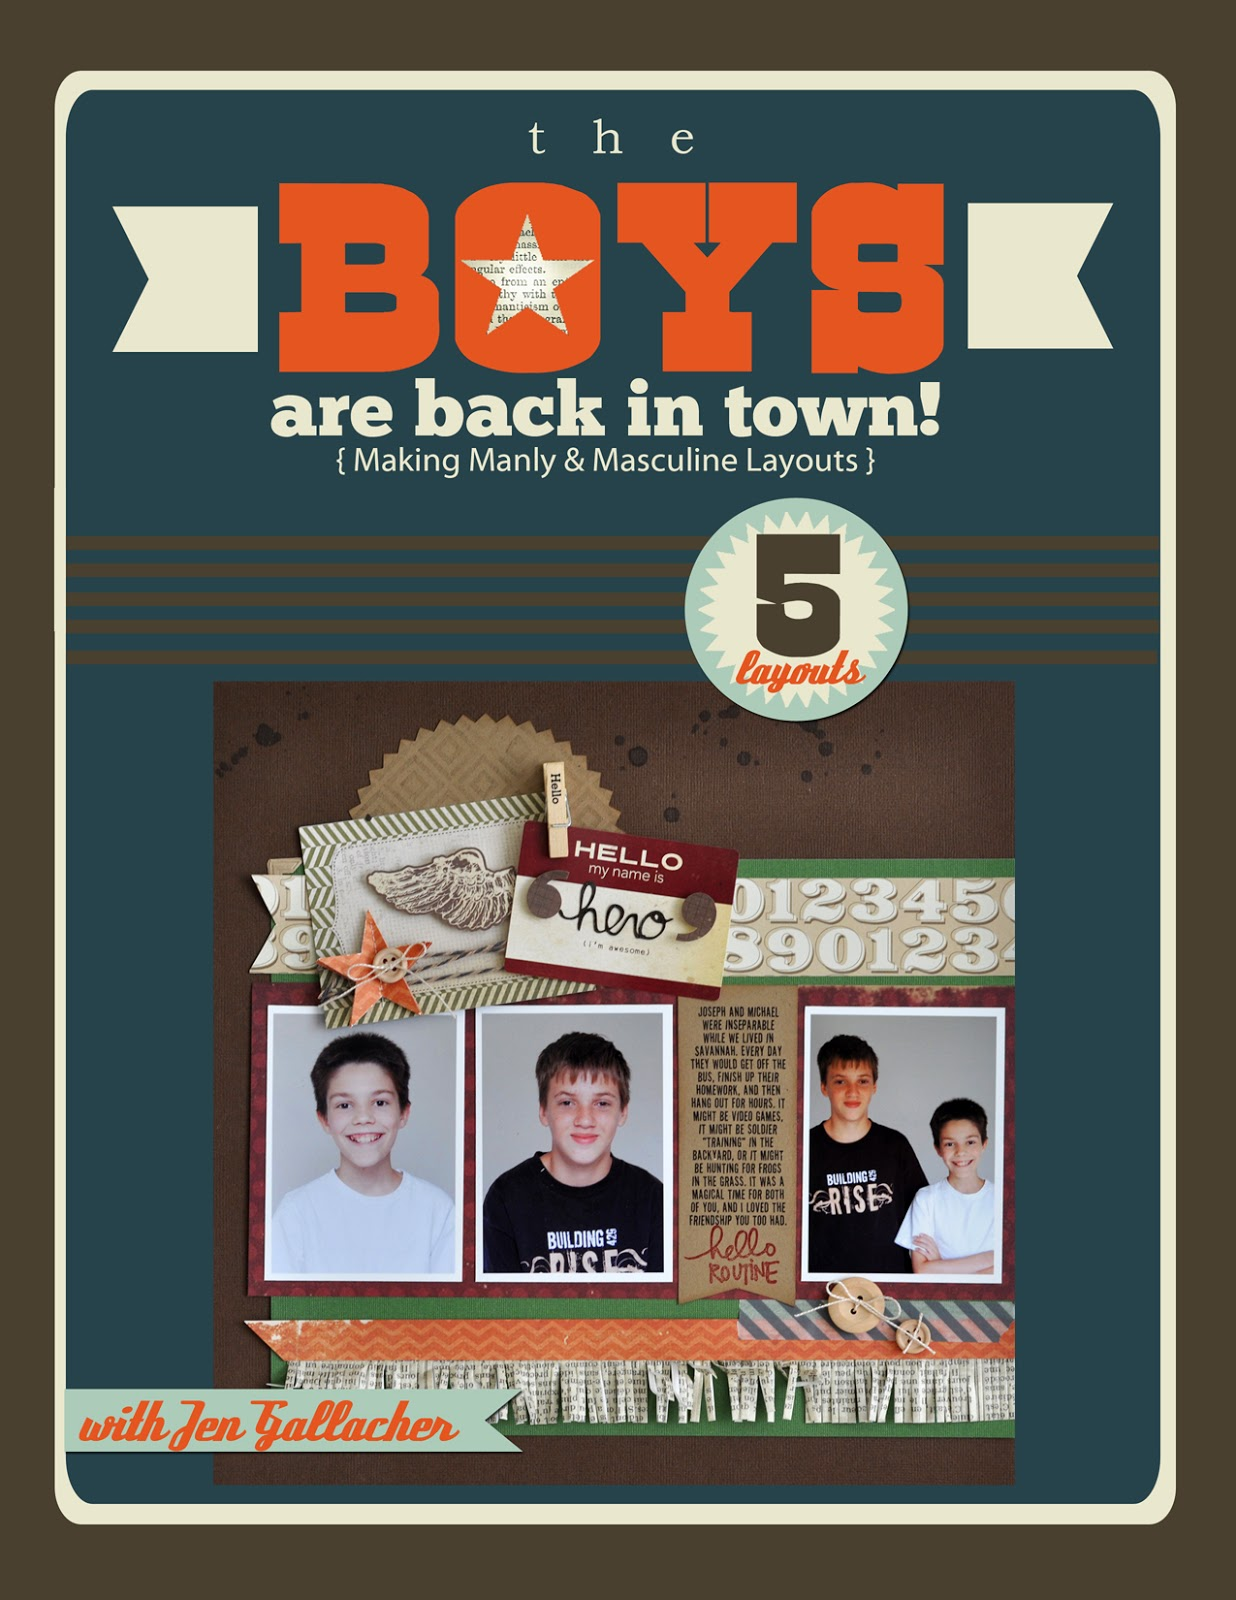 http://jen-gallacher.mybigcommerce.com/the-boys-are-back-in-town-masculine-scrapbooking-ebook/